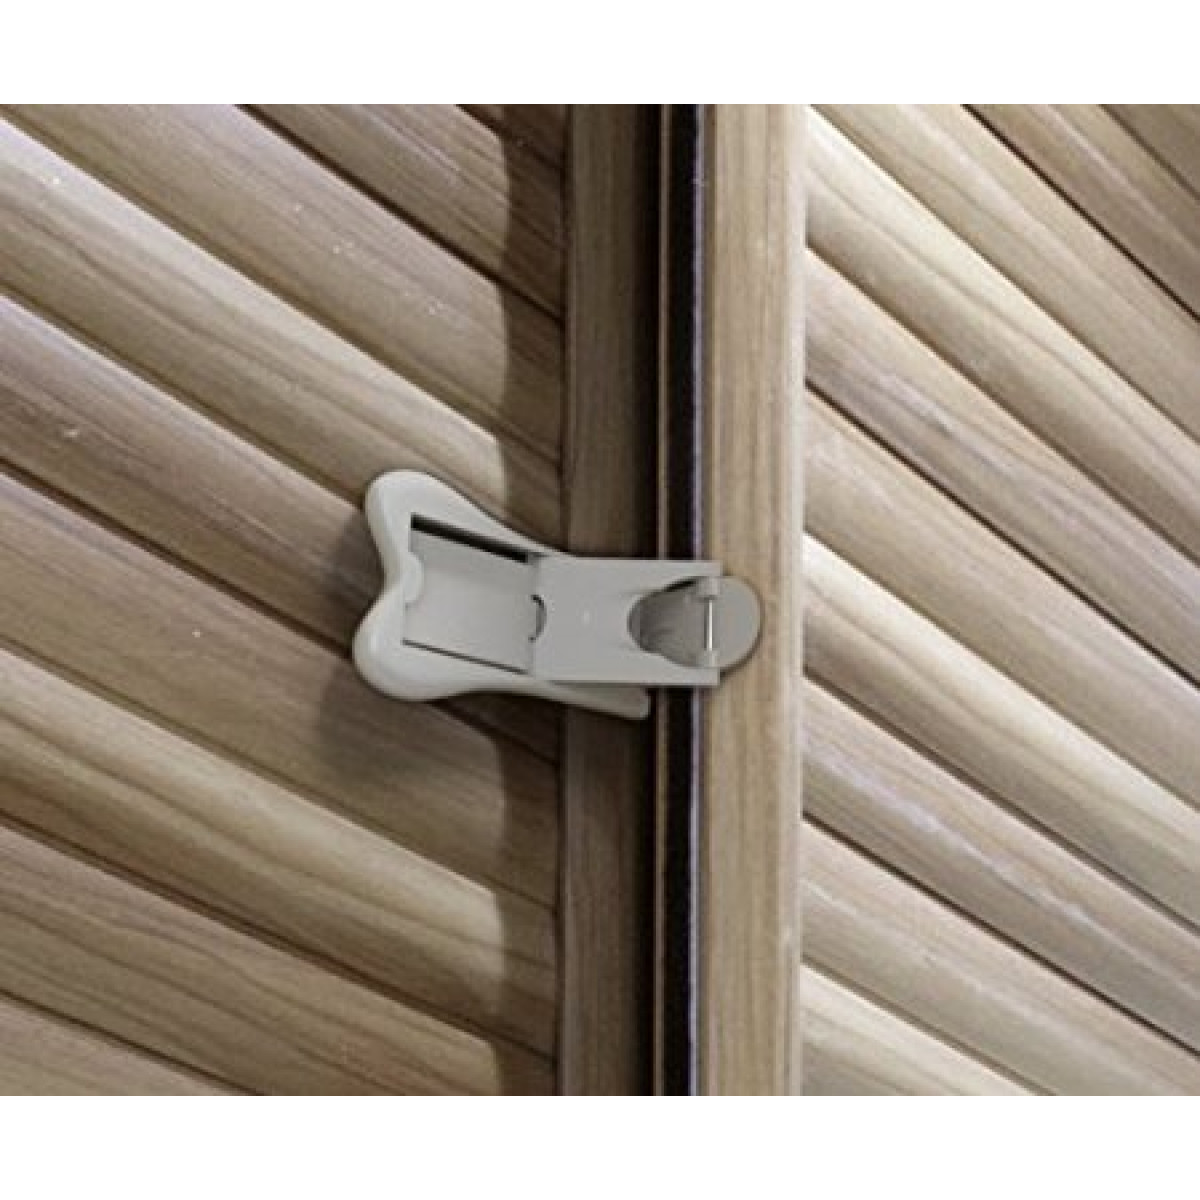 Sliding Door Lock For Closet And Window Locks With 3m Tape Child